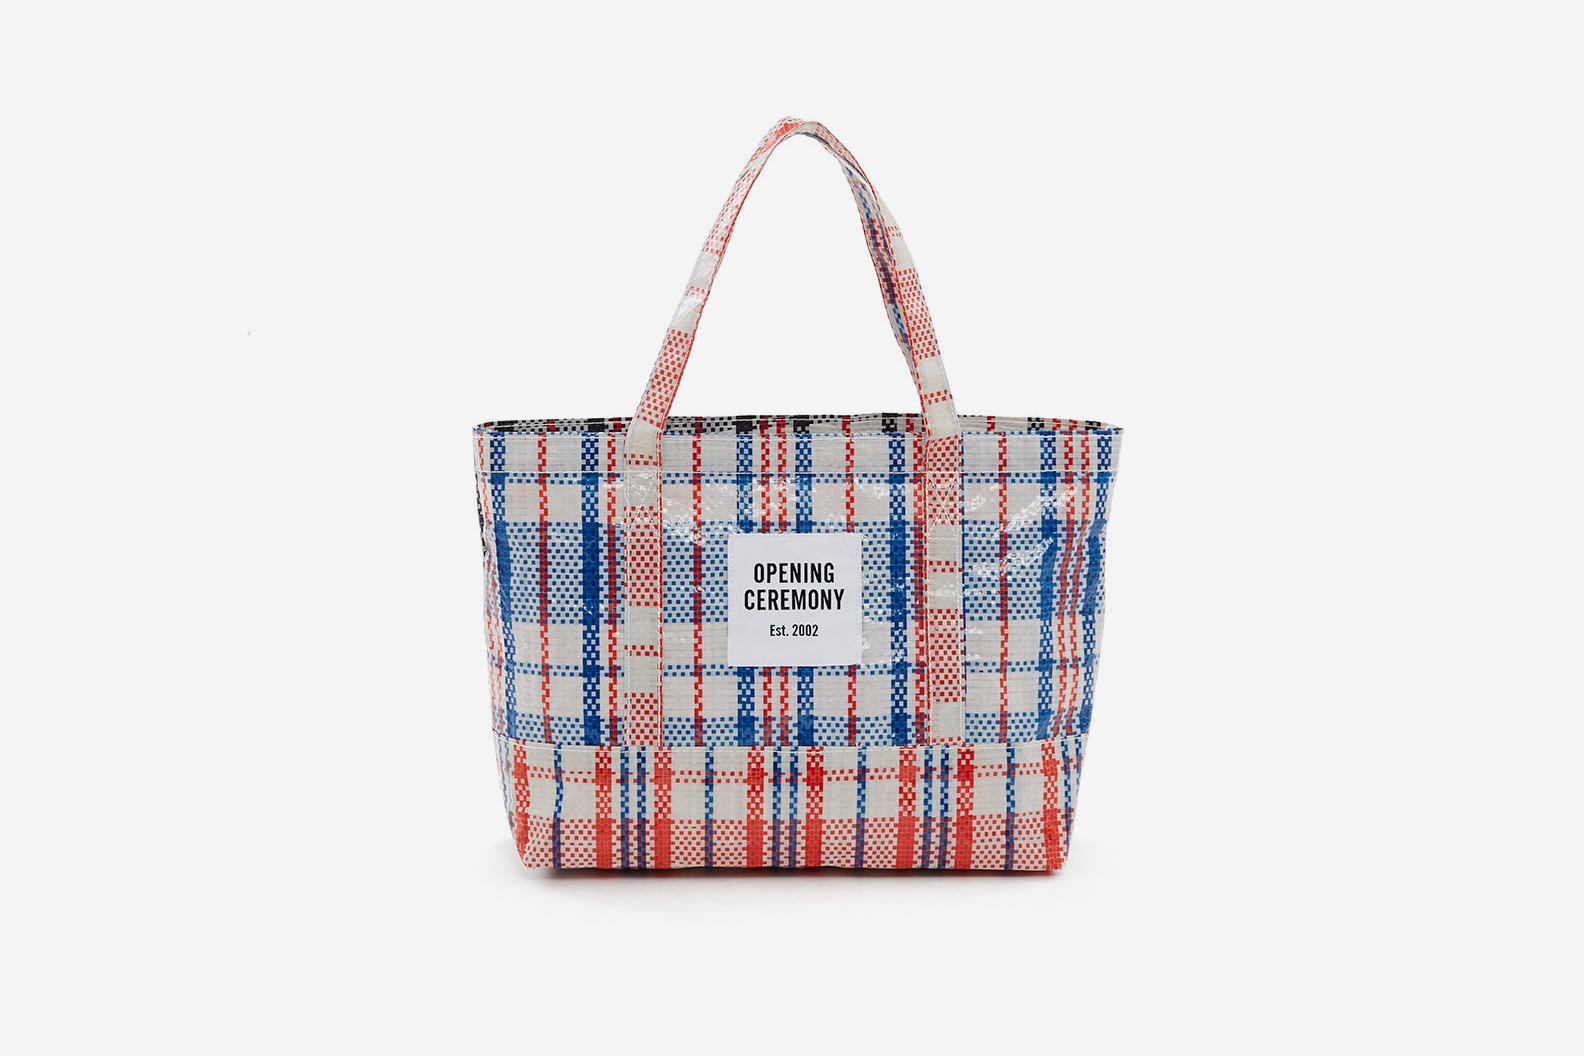 Opening Ceremony Small Tote Bag What Drops Now